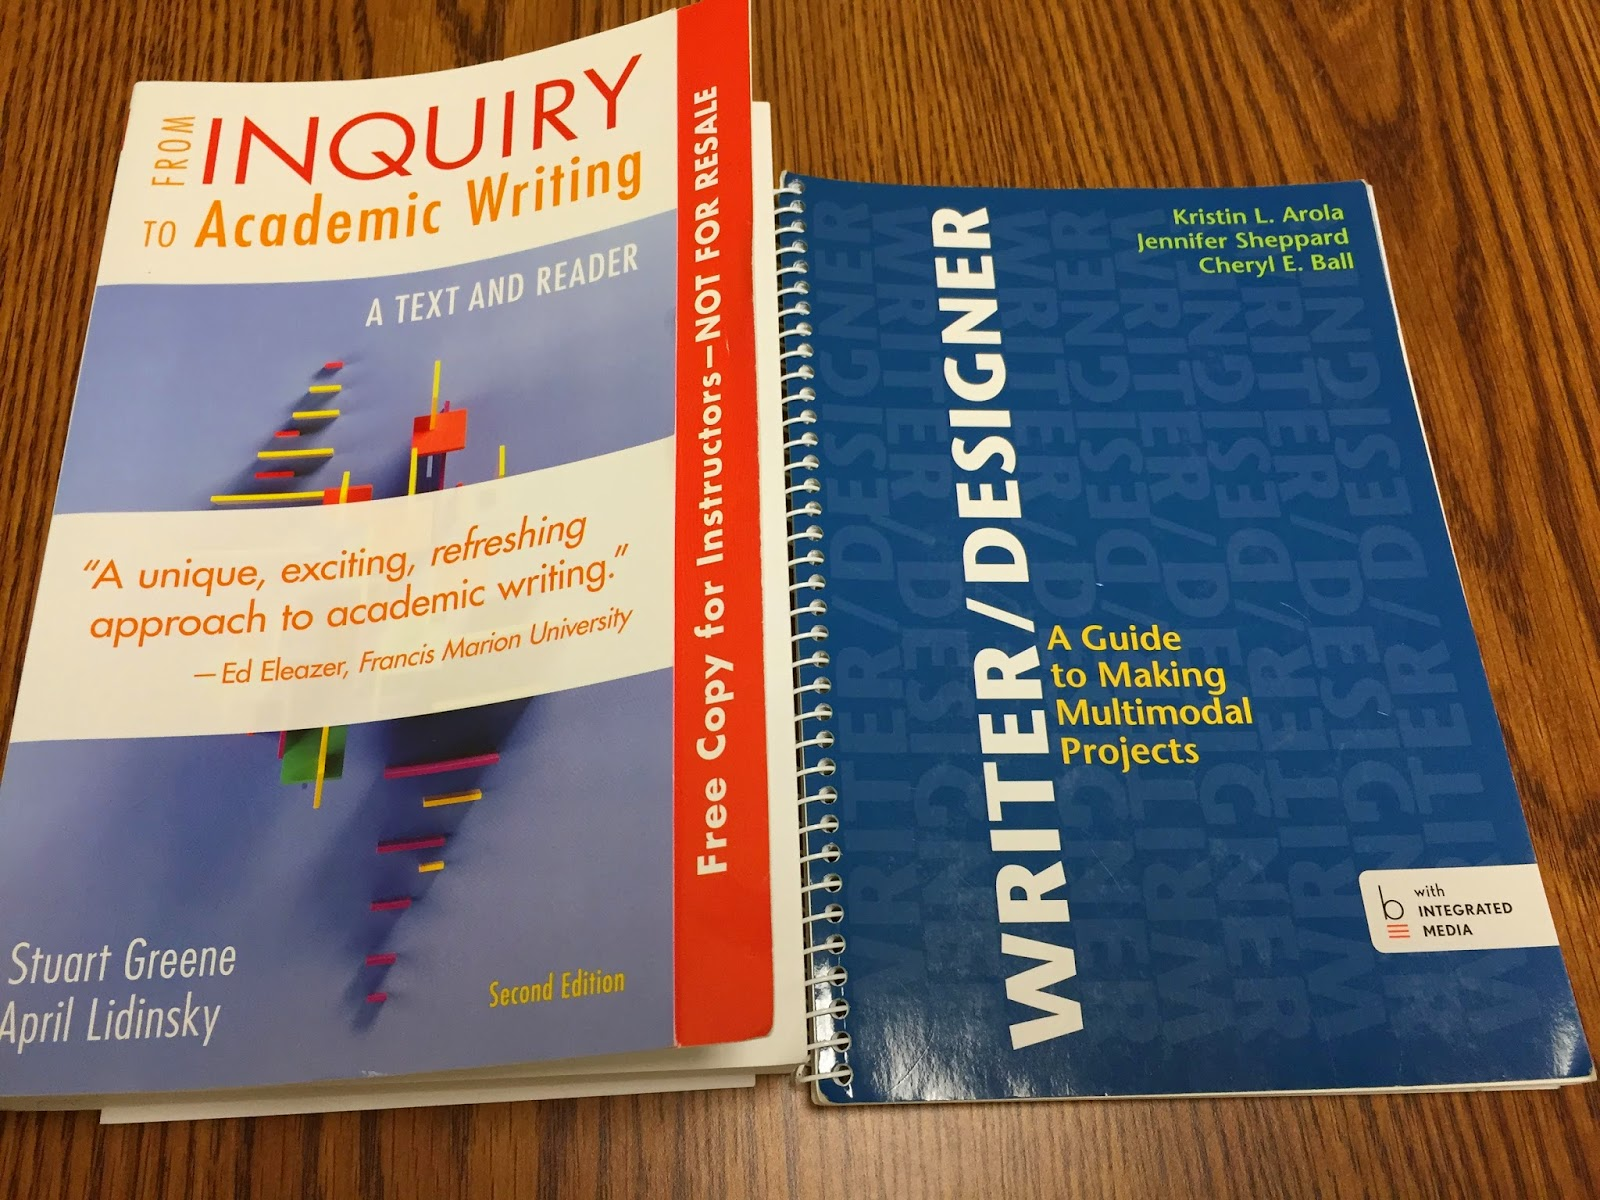 from inquiry to academic writing online Download from inquiry to academic writing a practical guide or read from inquiry to academic writing a practical guide online books in pdf, epub and mobi format click download or read online button to get from inquiry to academic writing a practical guide book now this site is like a library, use search box in the widget to get ebook that you want.